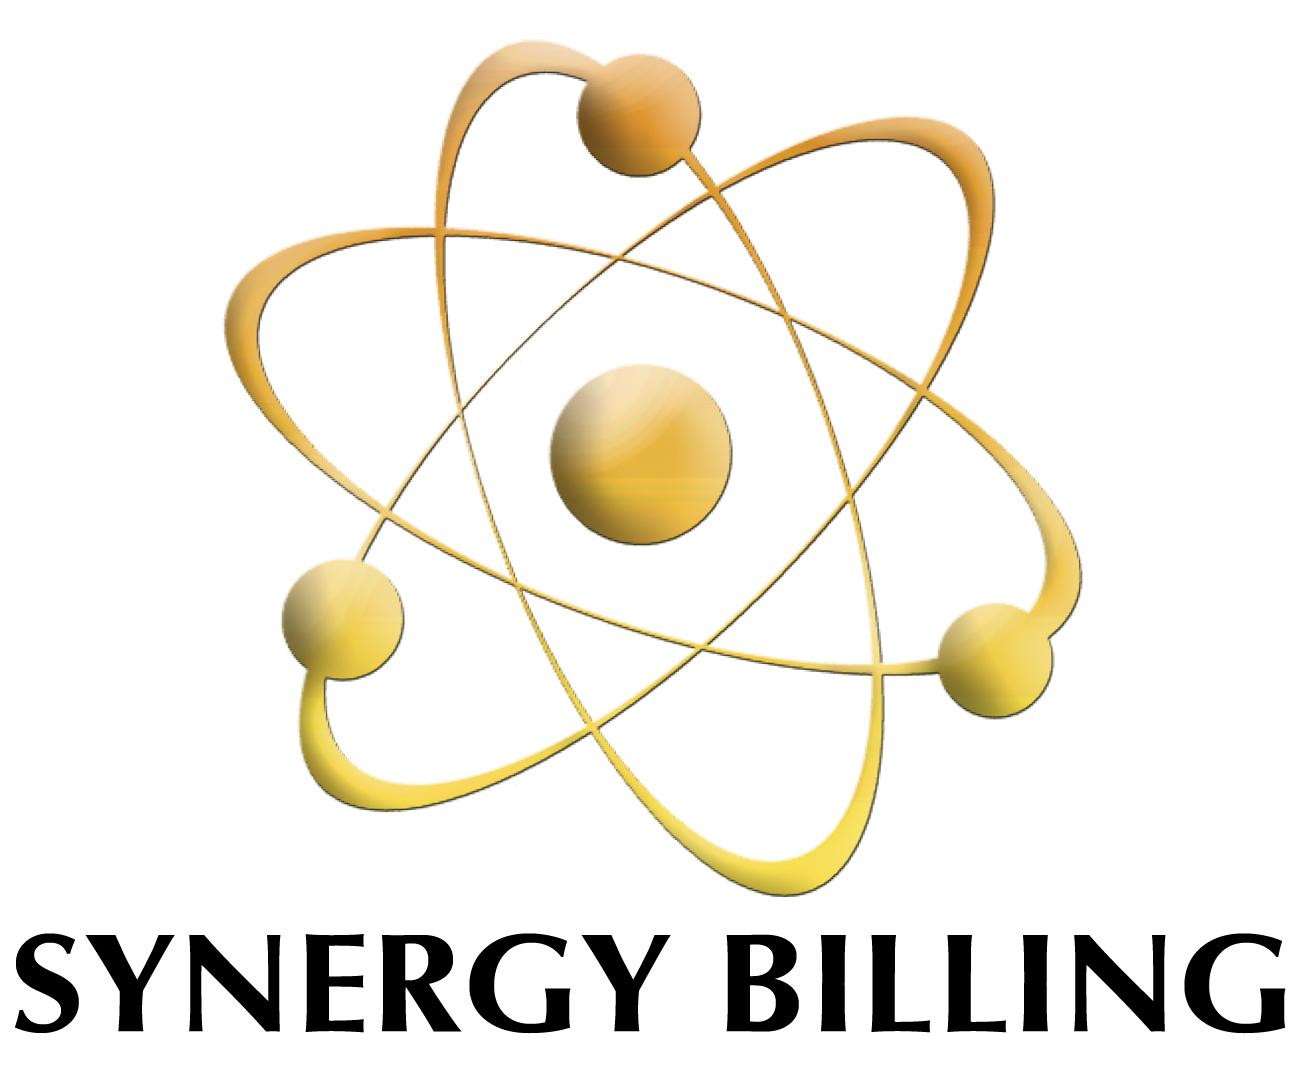 Synergy Billing